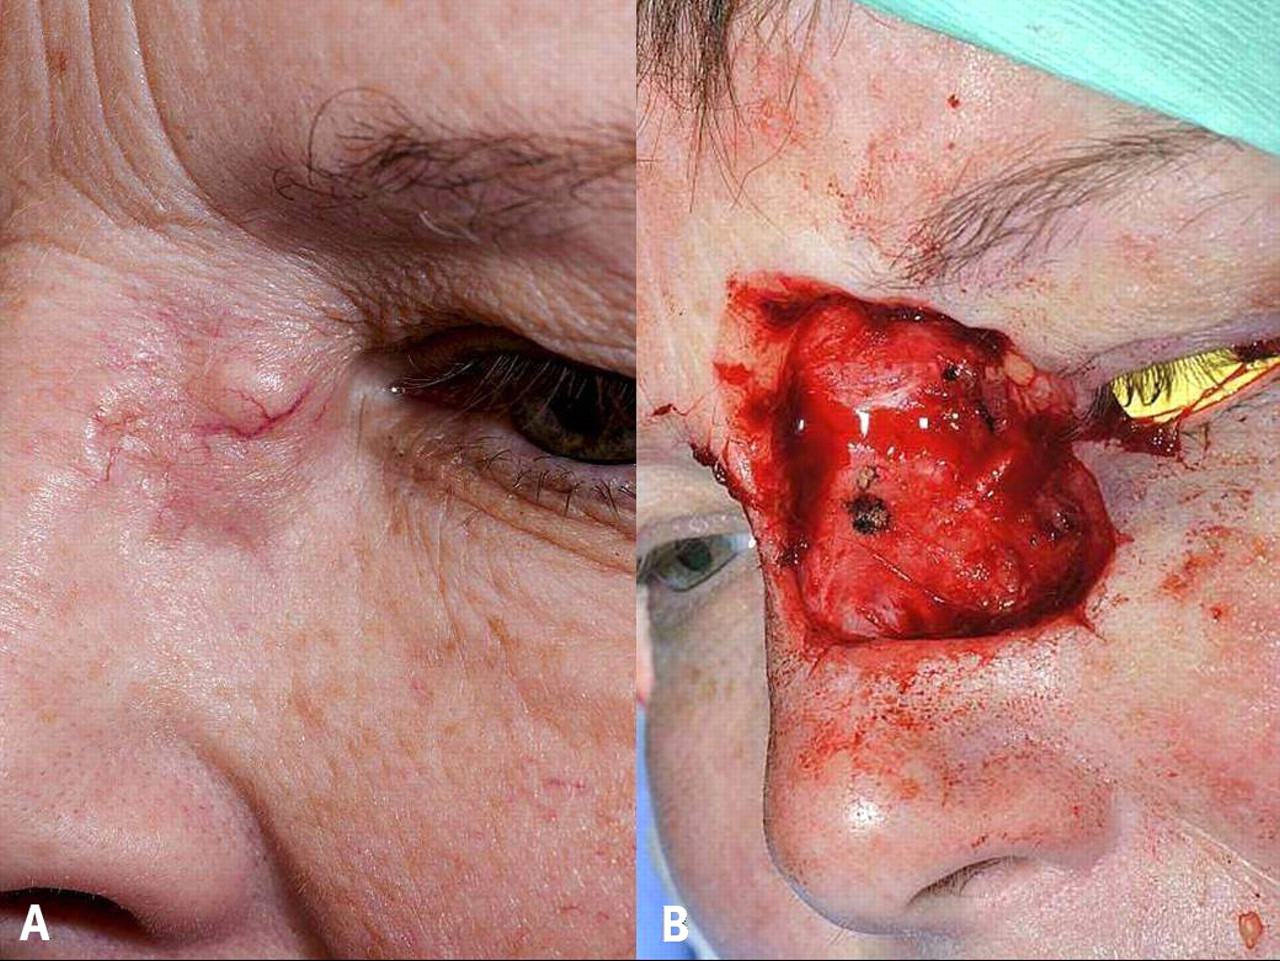 facial basal cell carcinoma | the bmj